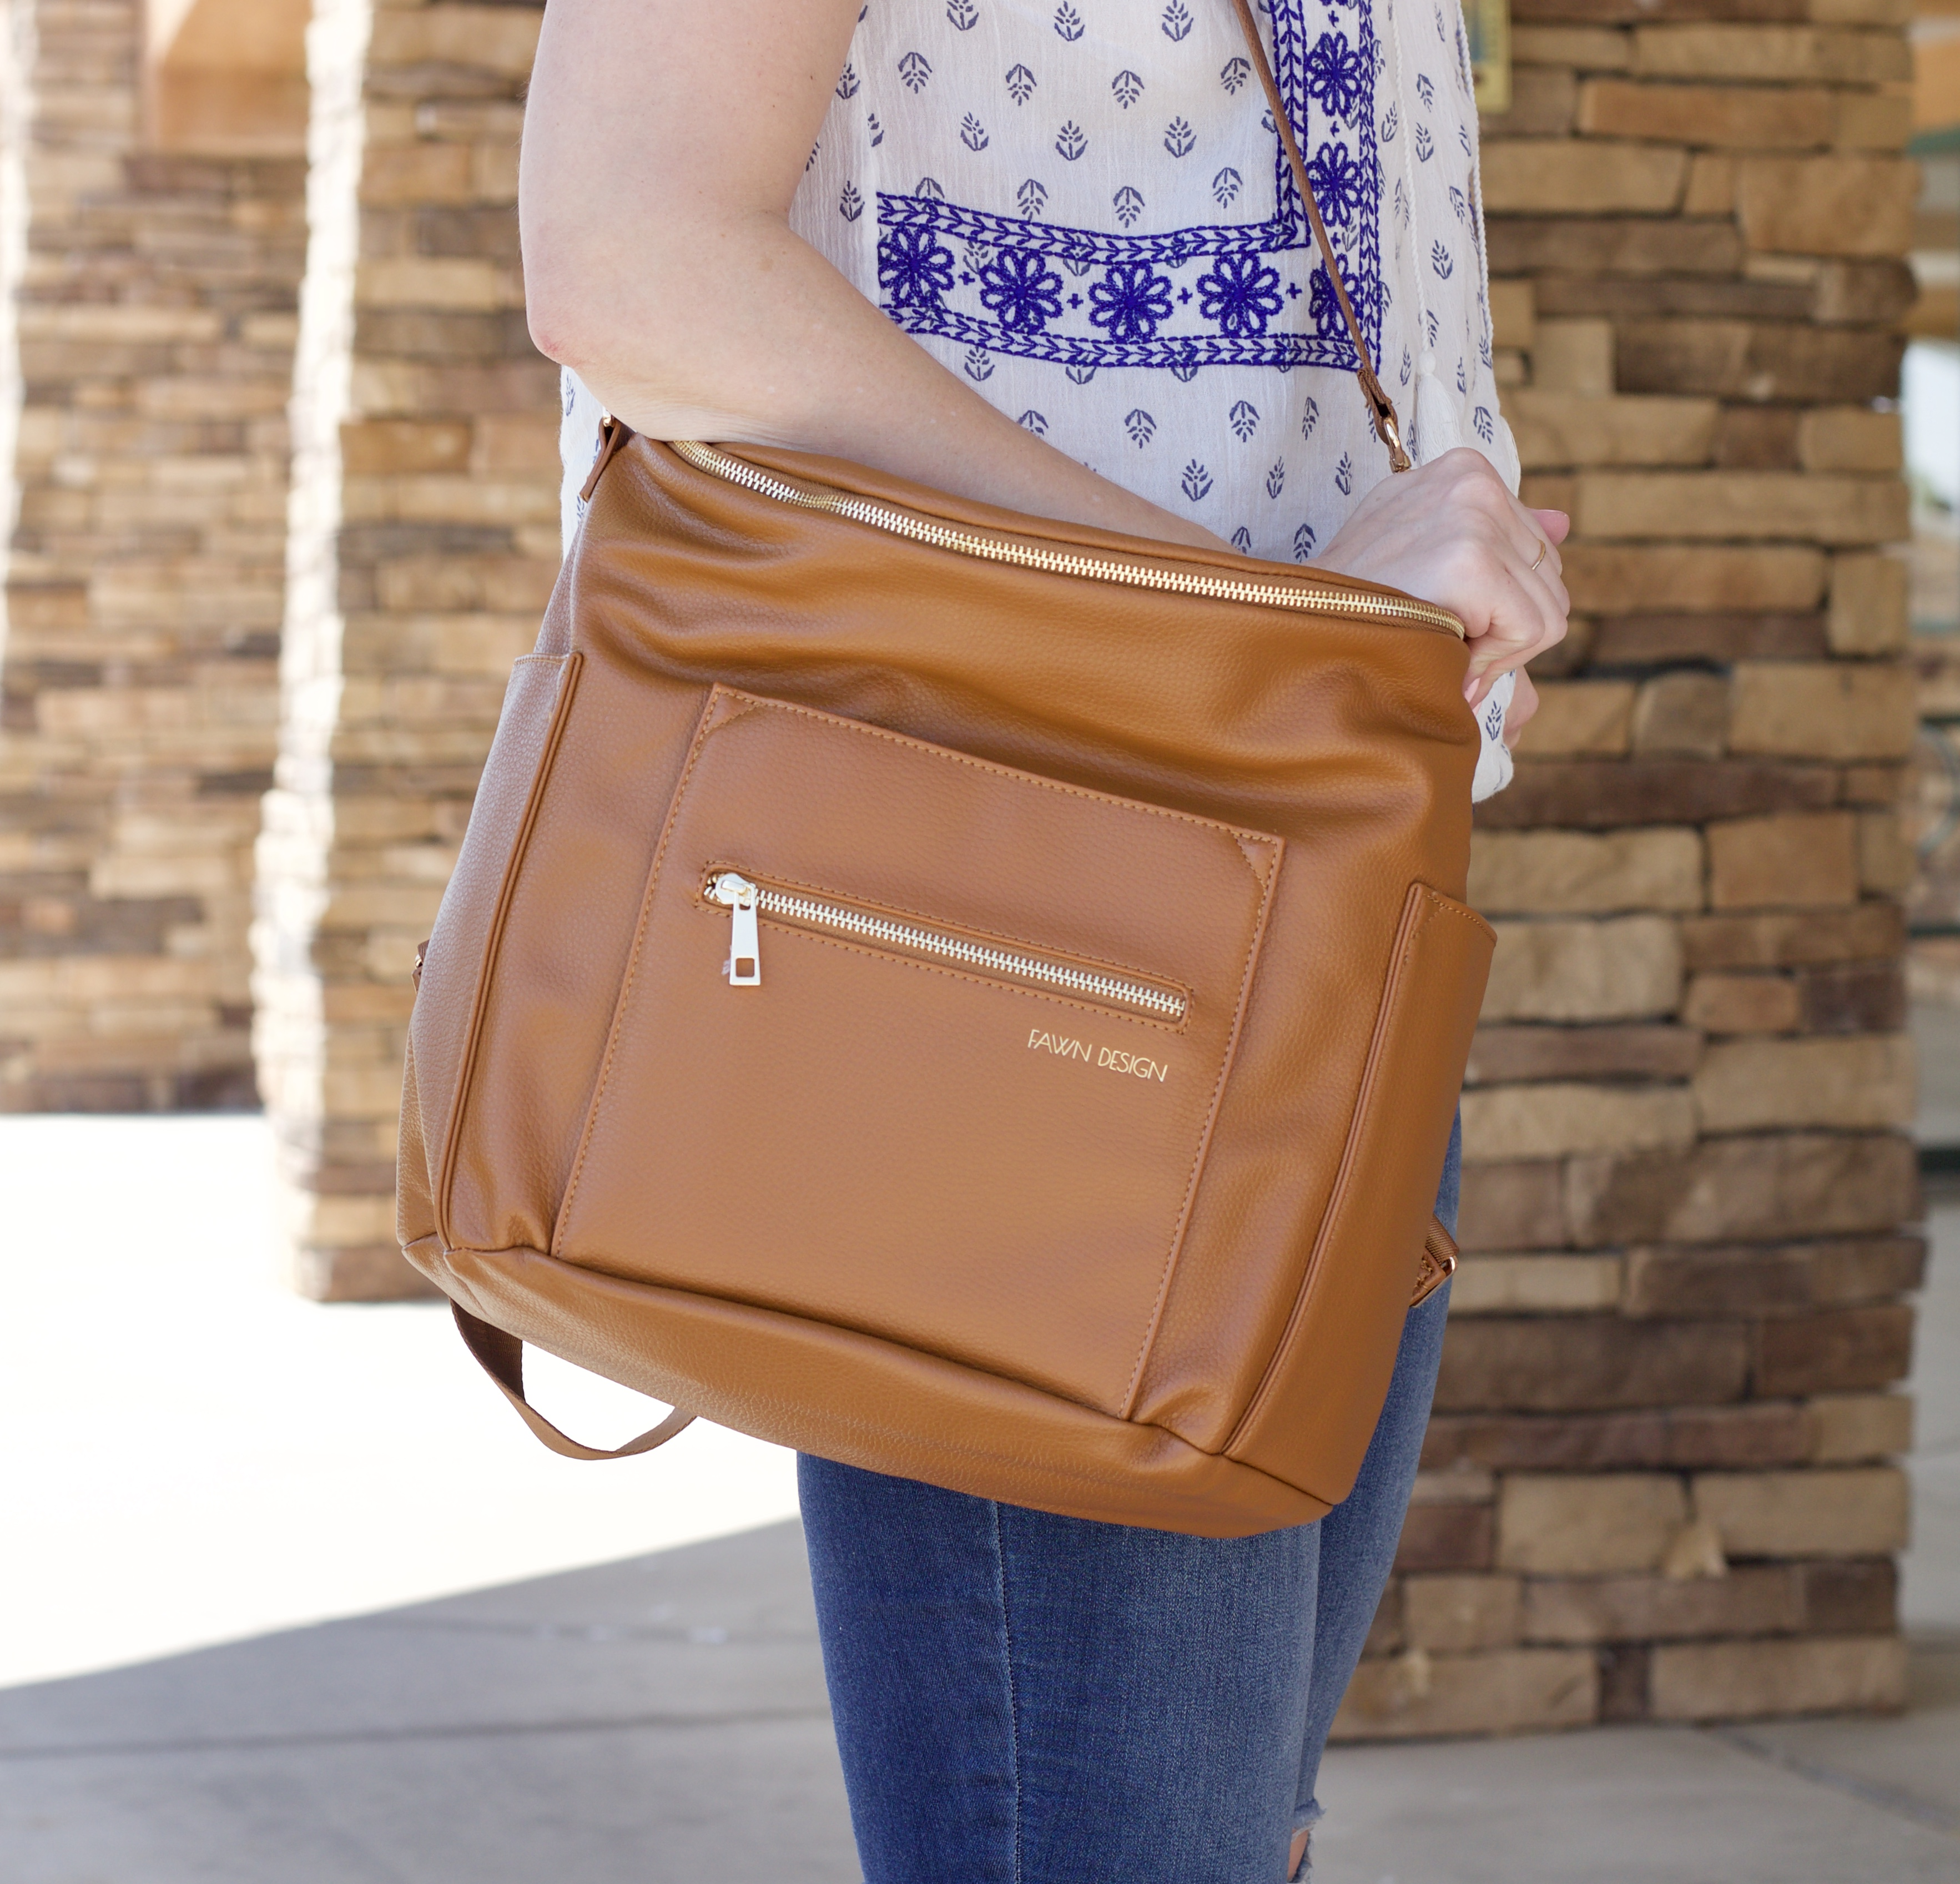 fawn design cognac bag